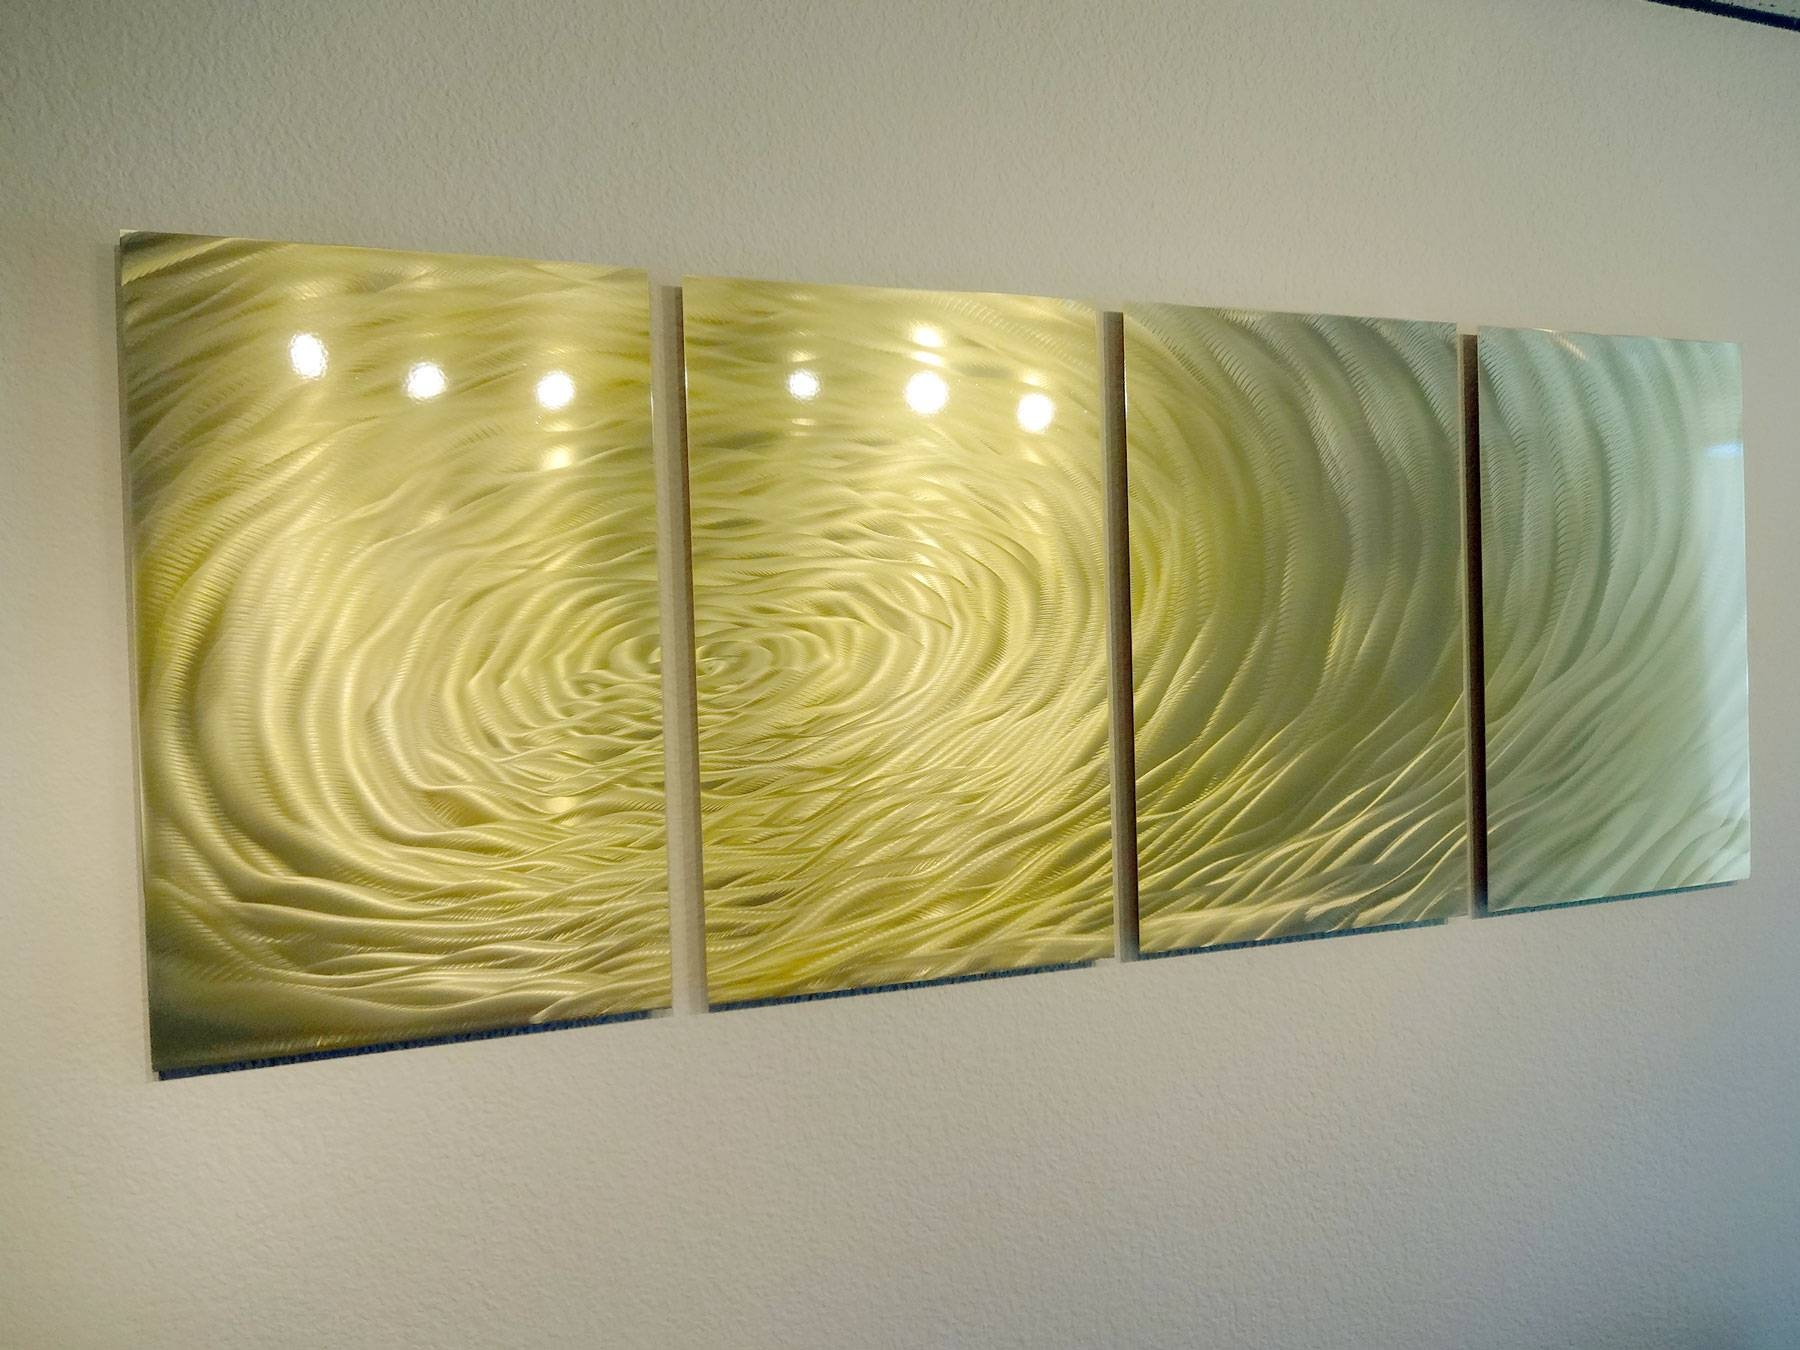 Gold Ripple  Metal Wall Art Abstract Contemporary Modern Decor Intended For Latest Contemporary Metal Wall Art Decor (View 10 of 20)